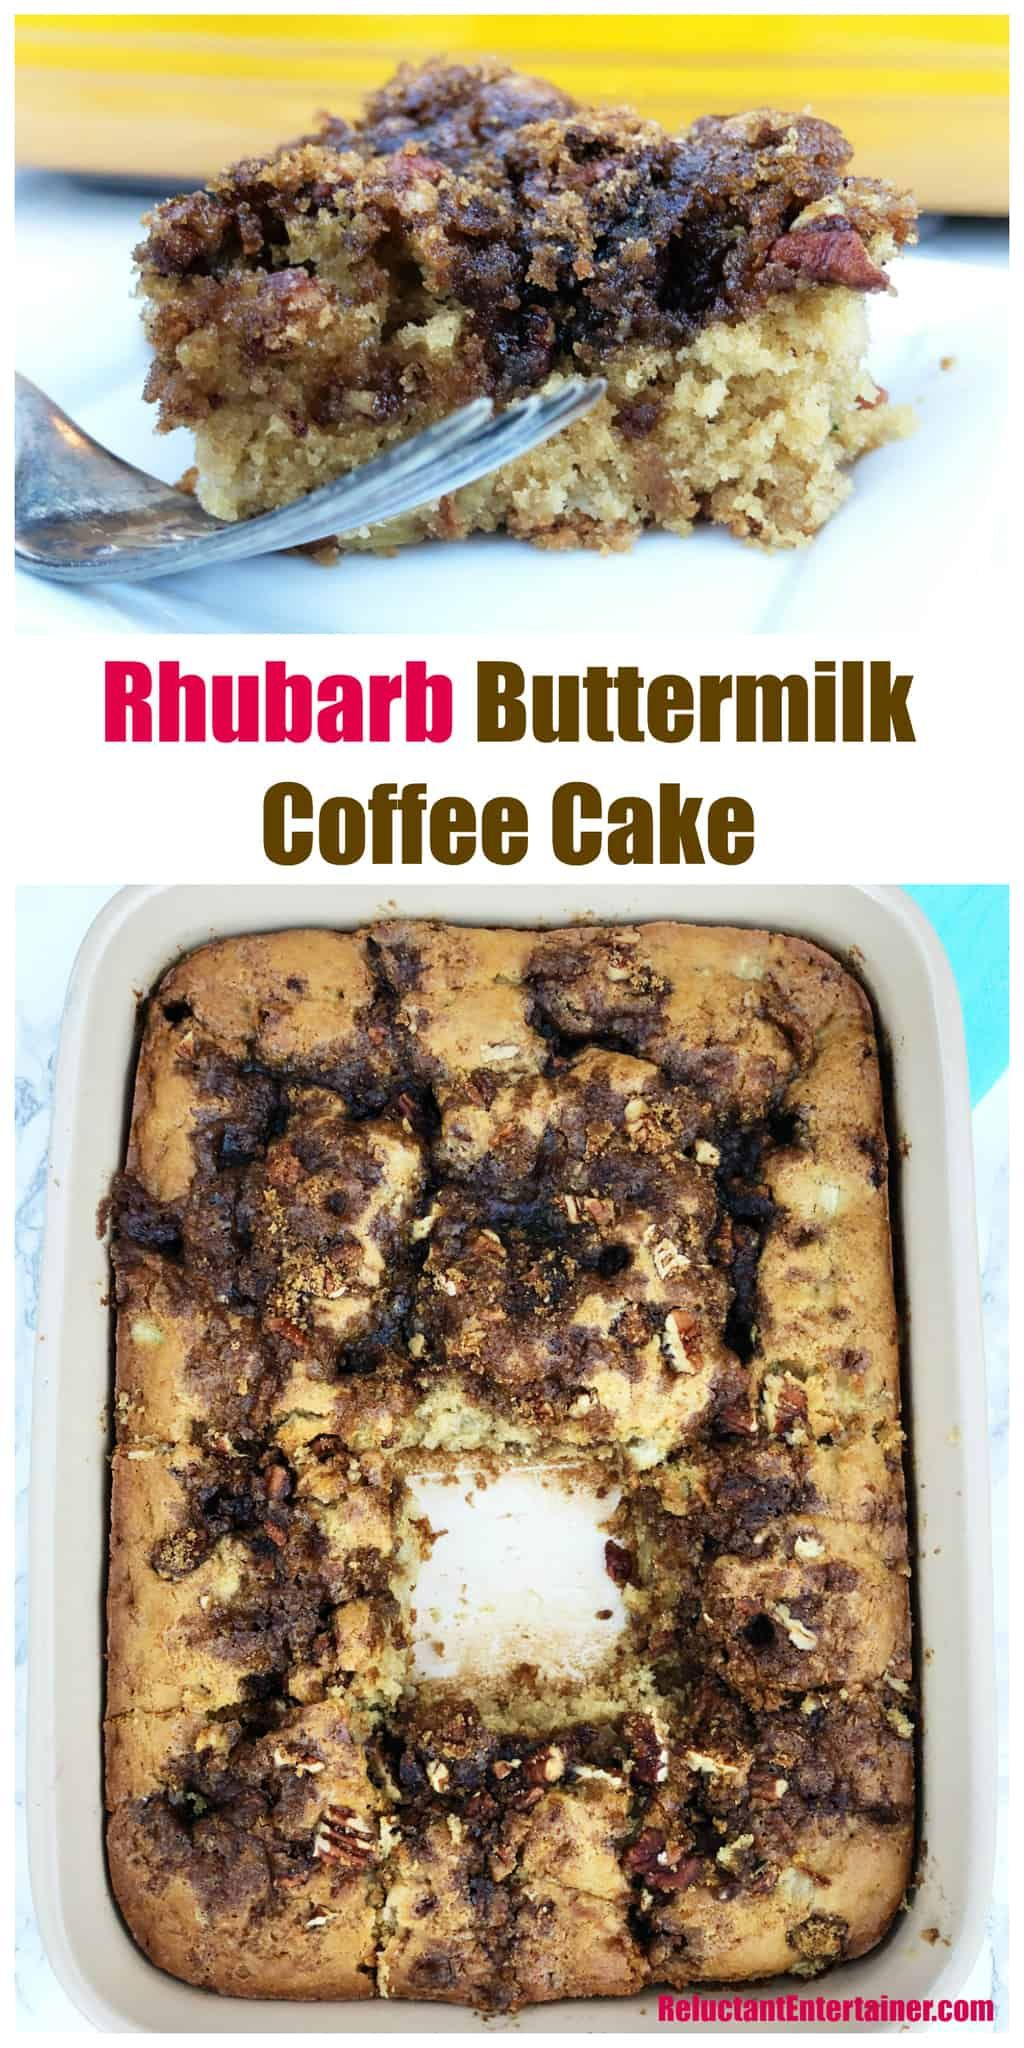 Rhubarb Buttermilk Coffee Cake Recipe For Summer Hosting And Overnight Guests Breakfast Breakfastcake Coffee Cake Coffee Cake Recipes Buttermilk Coffee Cake